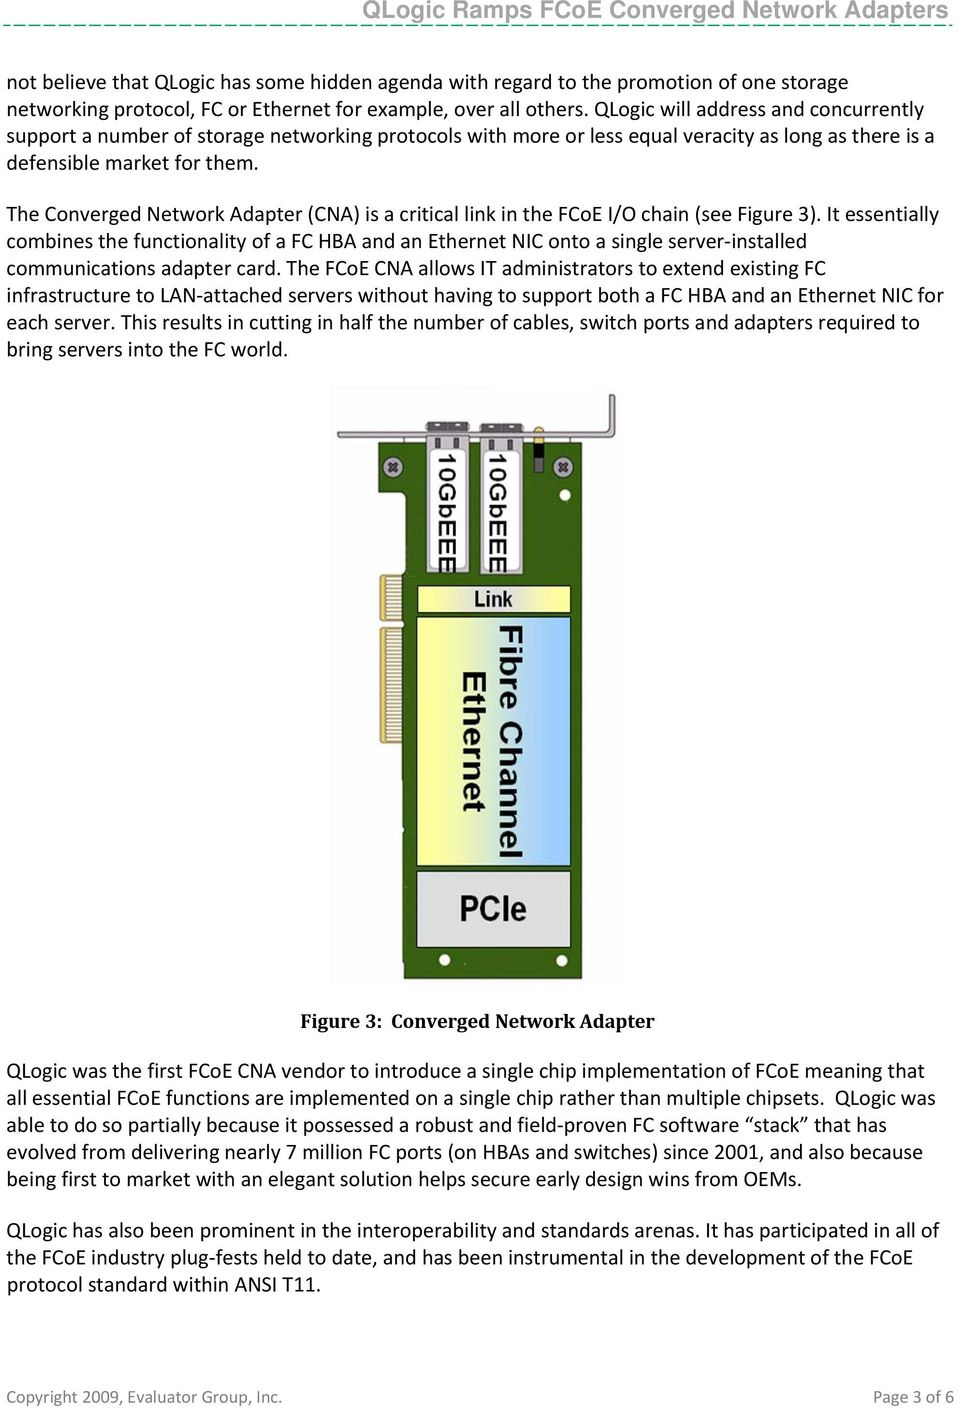 The Cnverged Netwrk Adapter (CNA) is a critical link in the FCE I/O chain (see Figure 3).